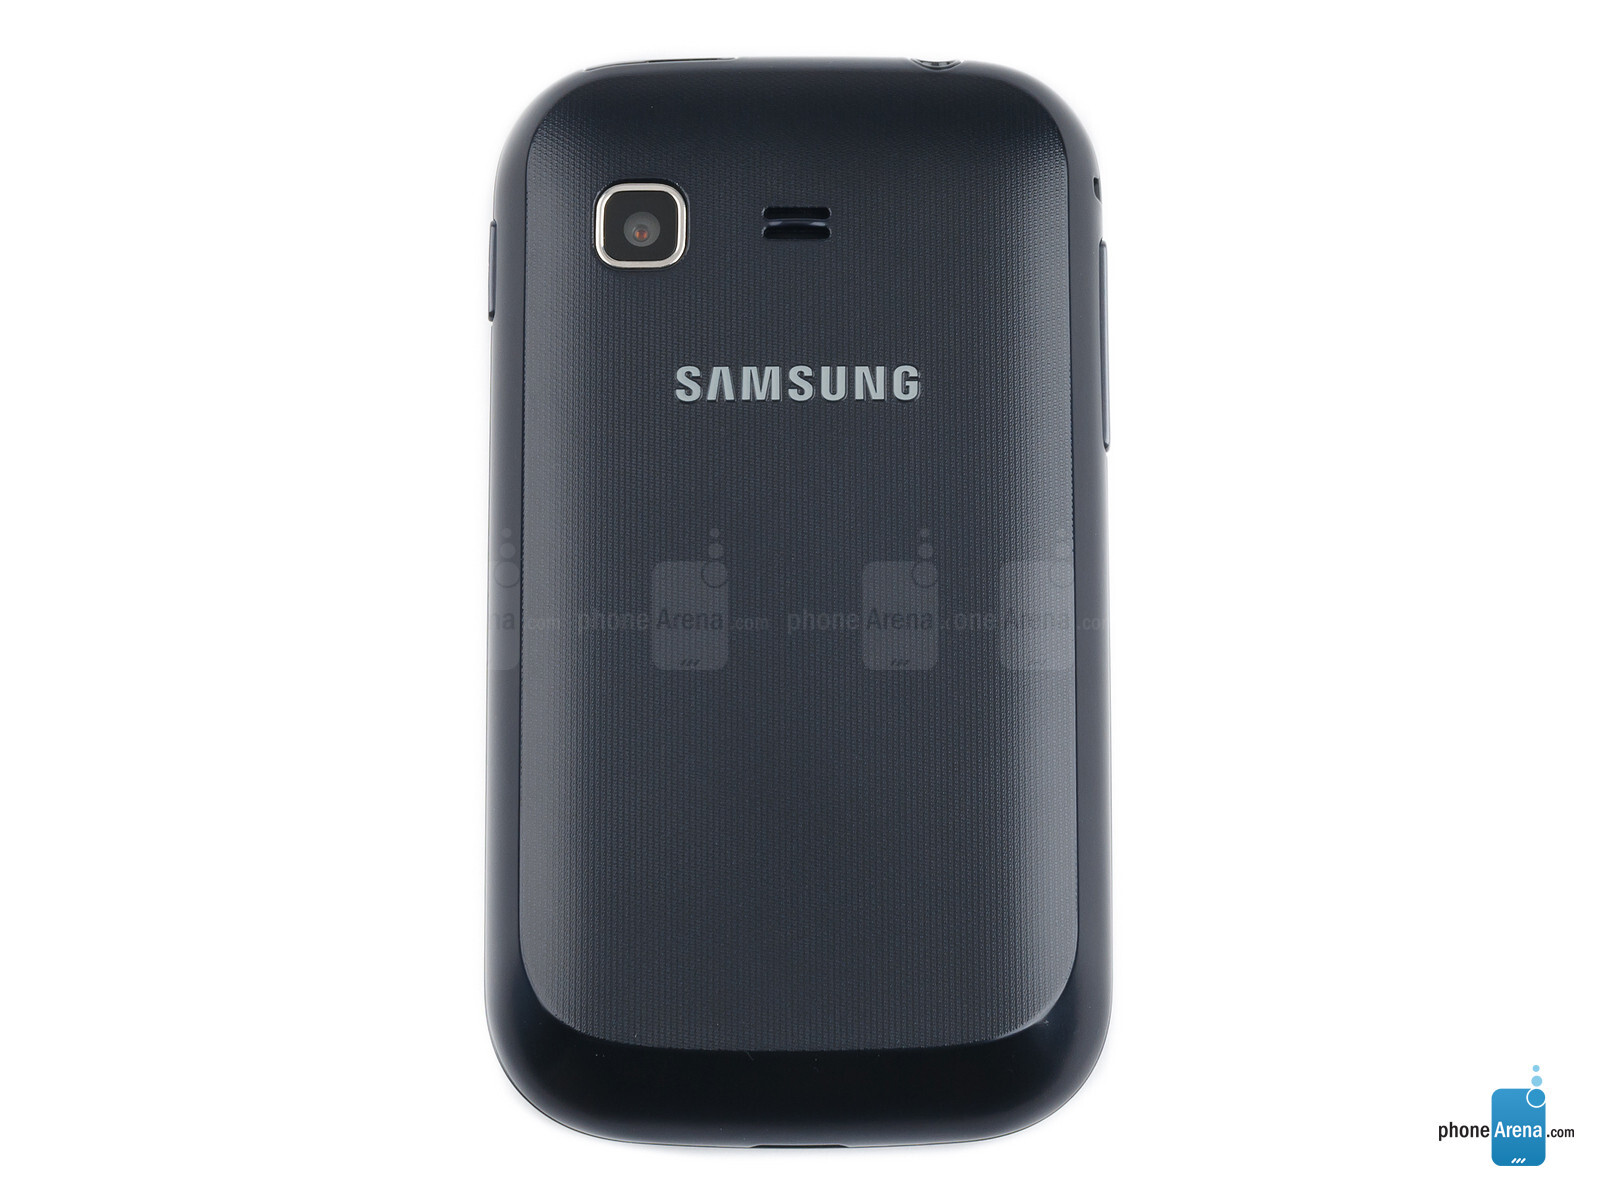 Samsung Galaxy Pocket specs